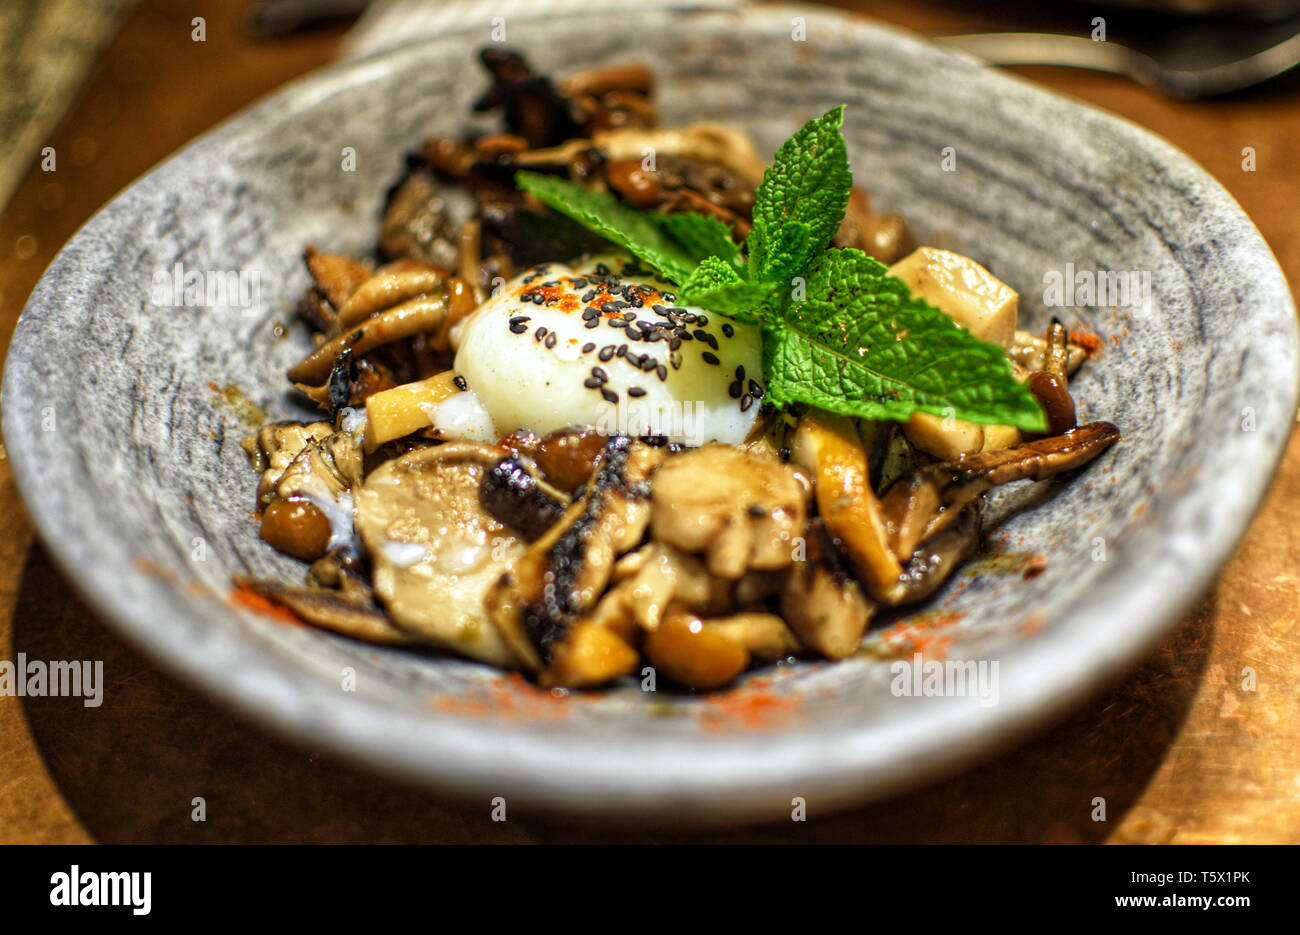 Bowl of mushrooms and fungi with an egg cooked at low temperature - Stock Image